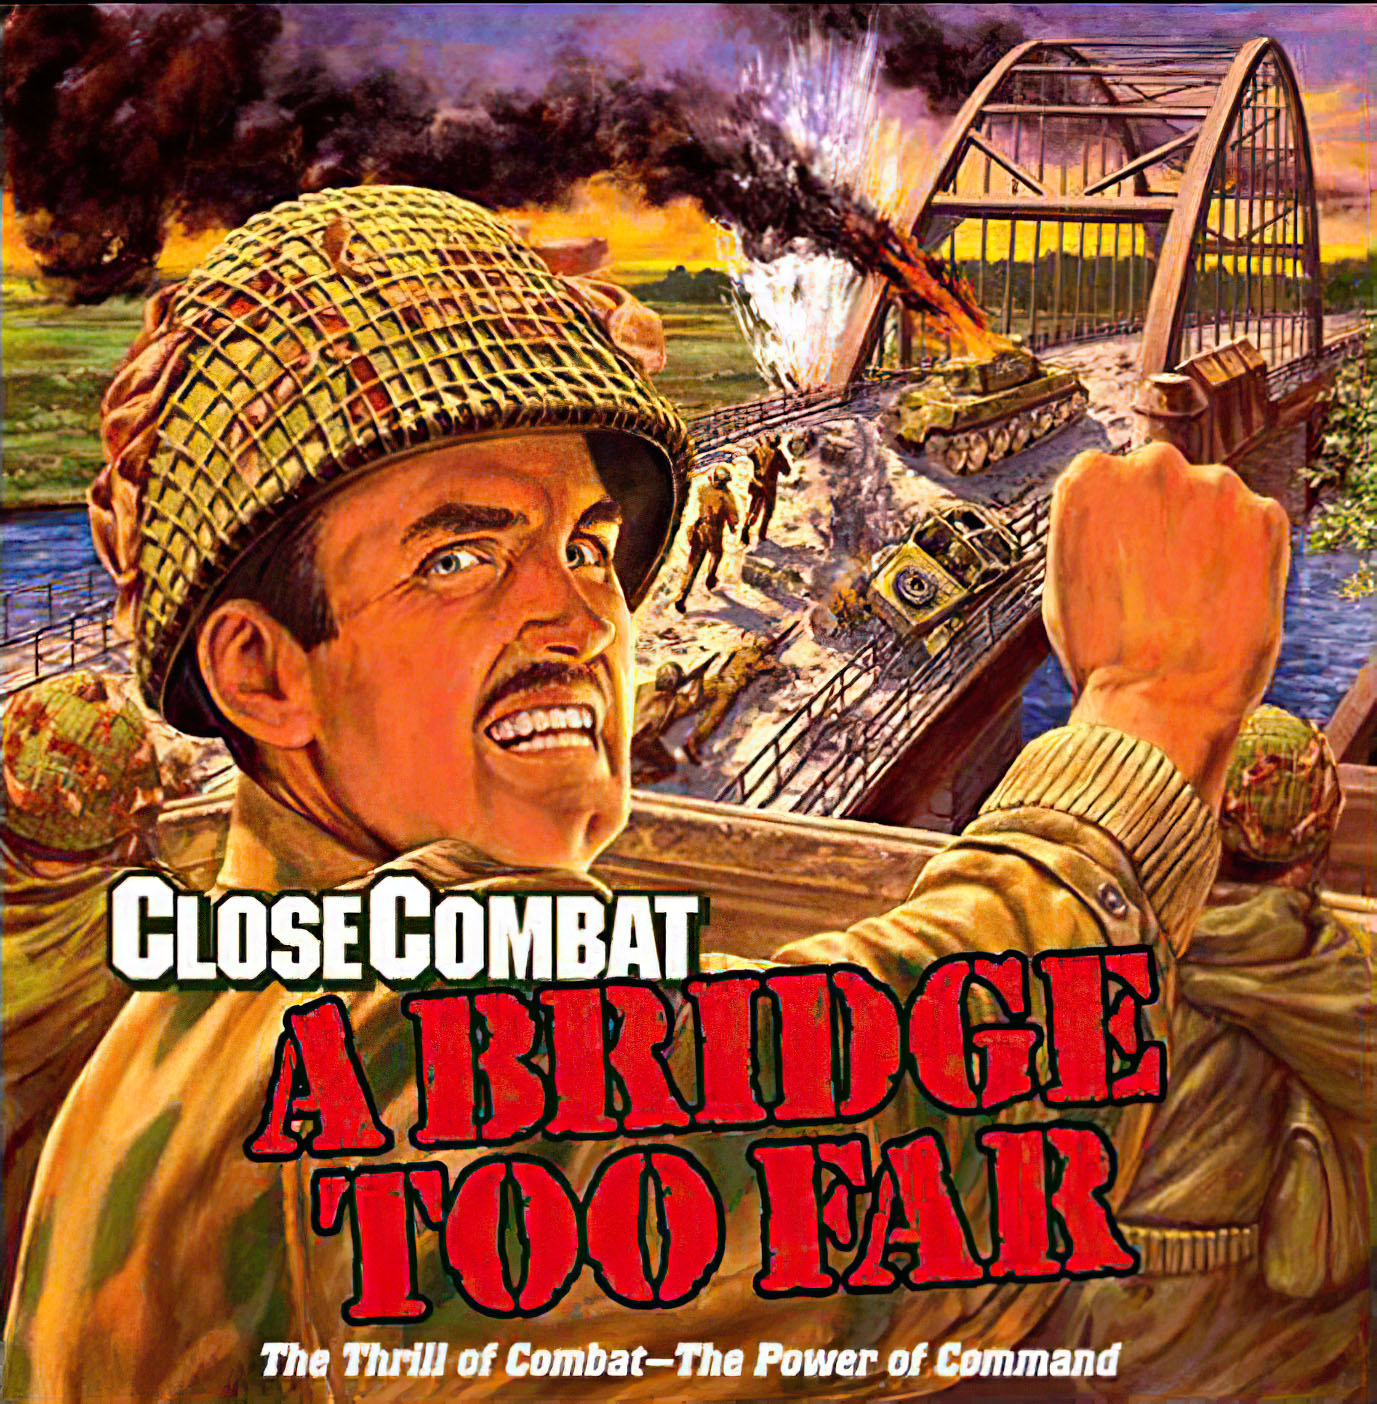 Close Combat Wacht am Rhein: A Bridge Too Far Mod 1.0